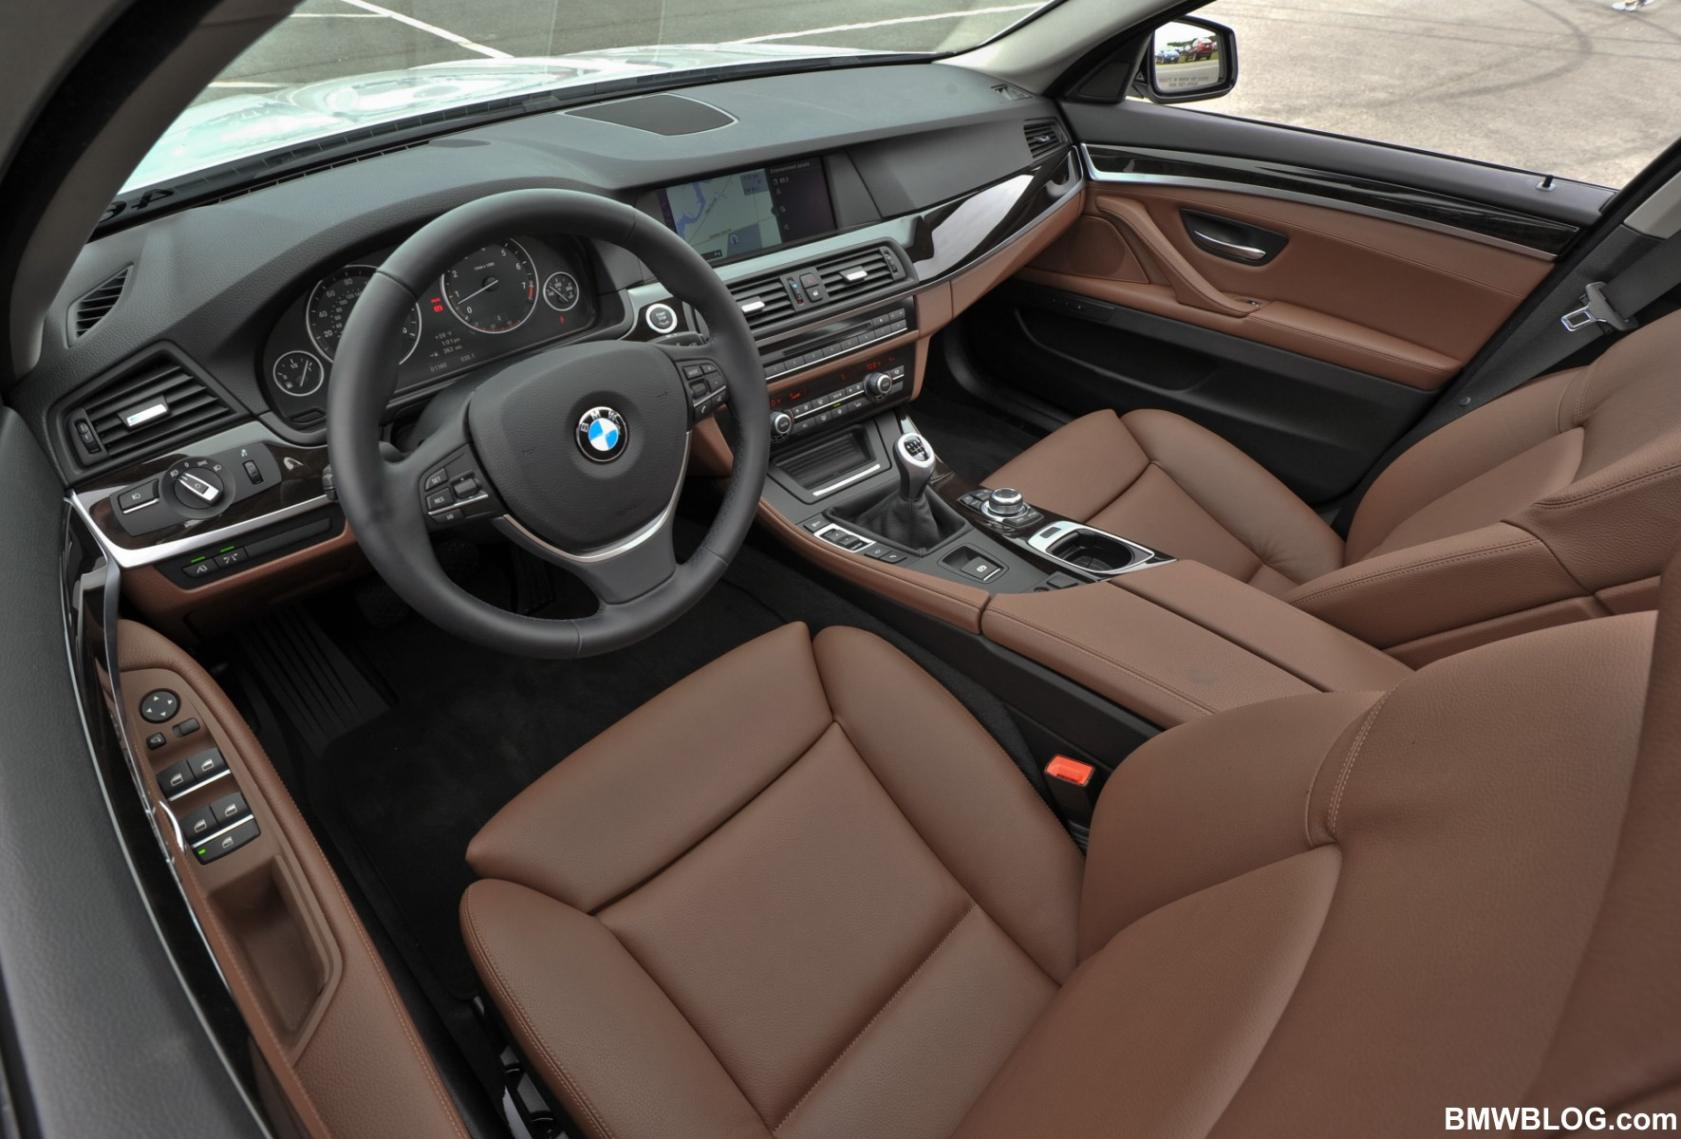 bmw s rie 5 f10 f11 topic officiel page 169 s rie 5 m5 bmw forum marques. Black Bedroom Furniture Sets. Home Design Ideas